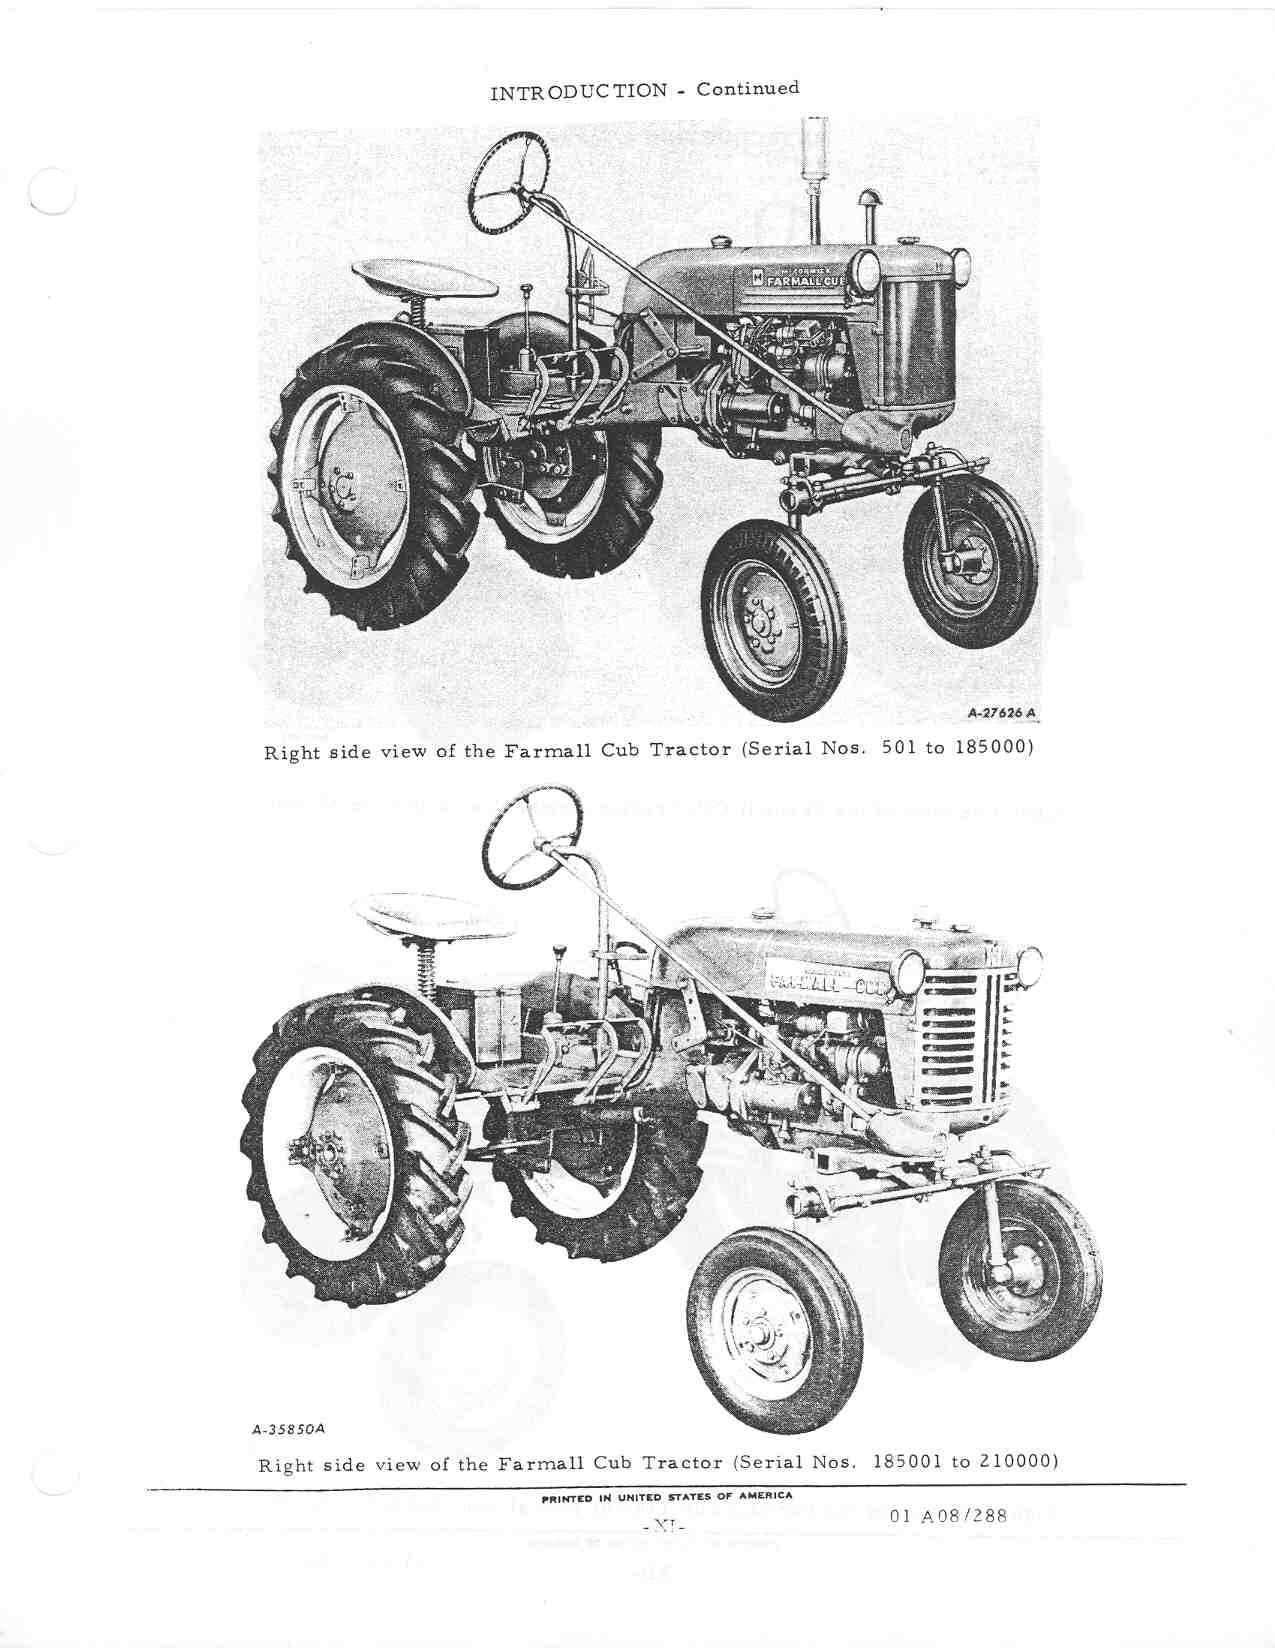 Finding The Year Of My Tractor